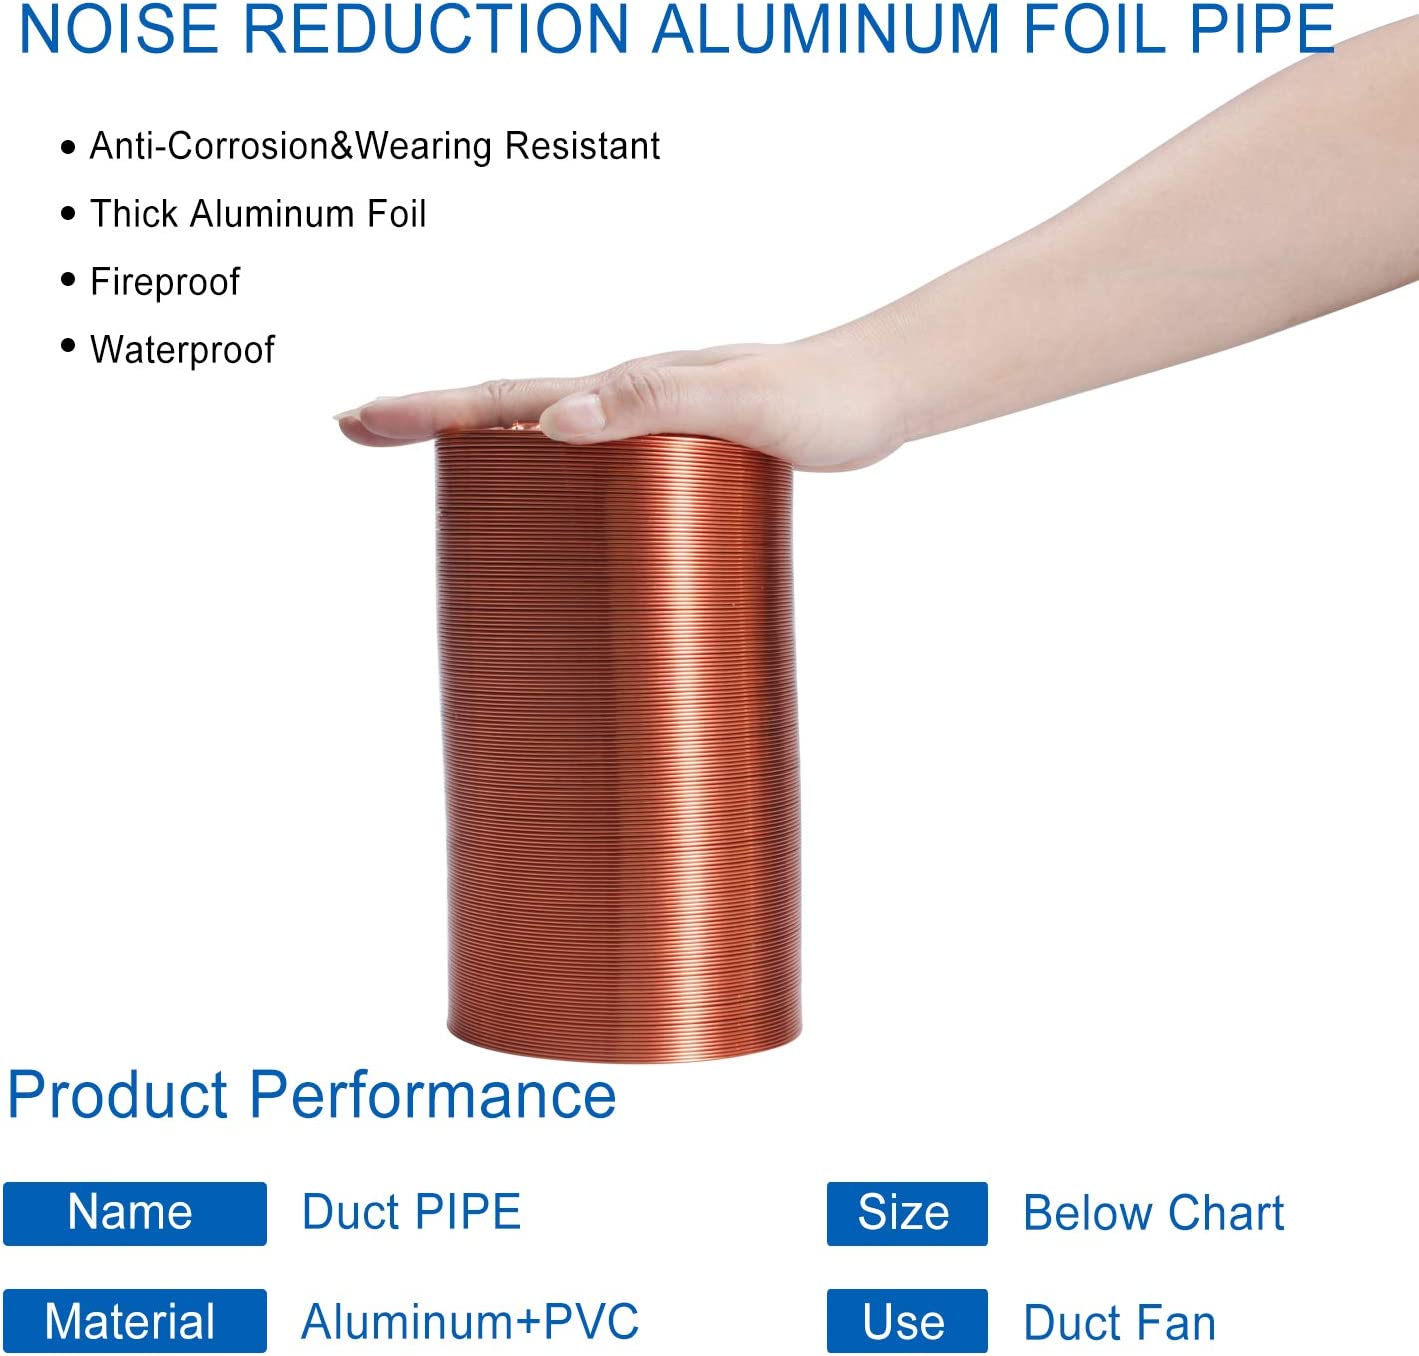 Hon/&Guan 4 Inch Flexible Clothes Dryer Transition Duct Copper Hose Aluminum HVAC Ducting 6.56 Feet for Grow Room Tent Ventilation Cooling HVAC Heating or Dryers